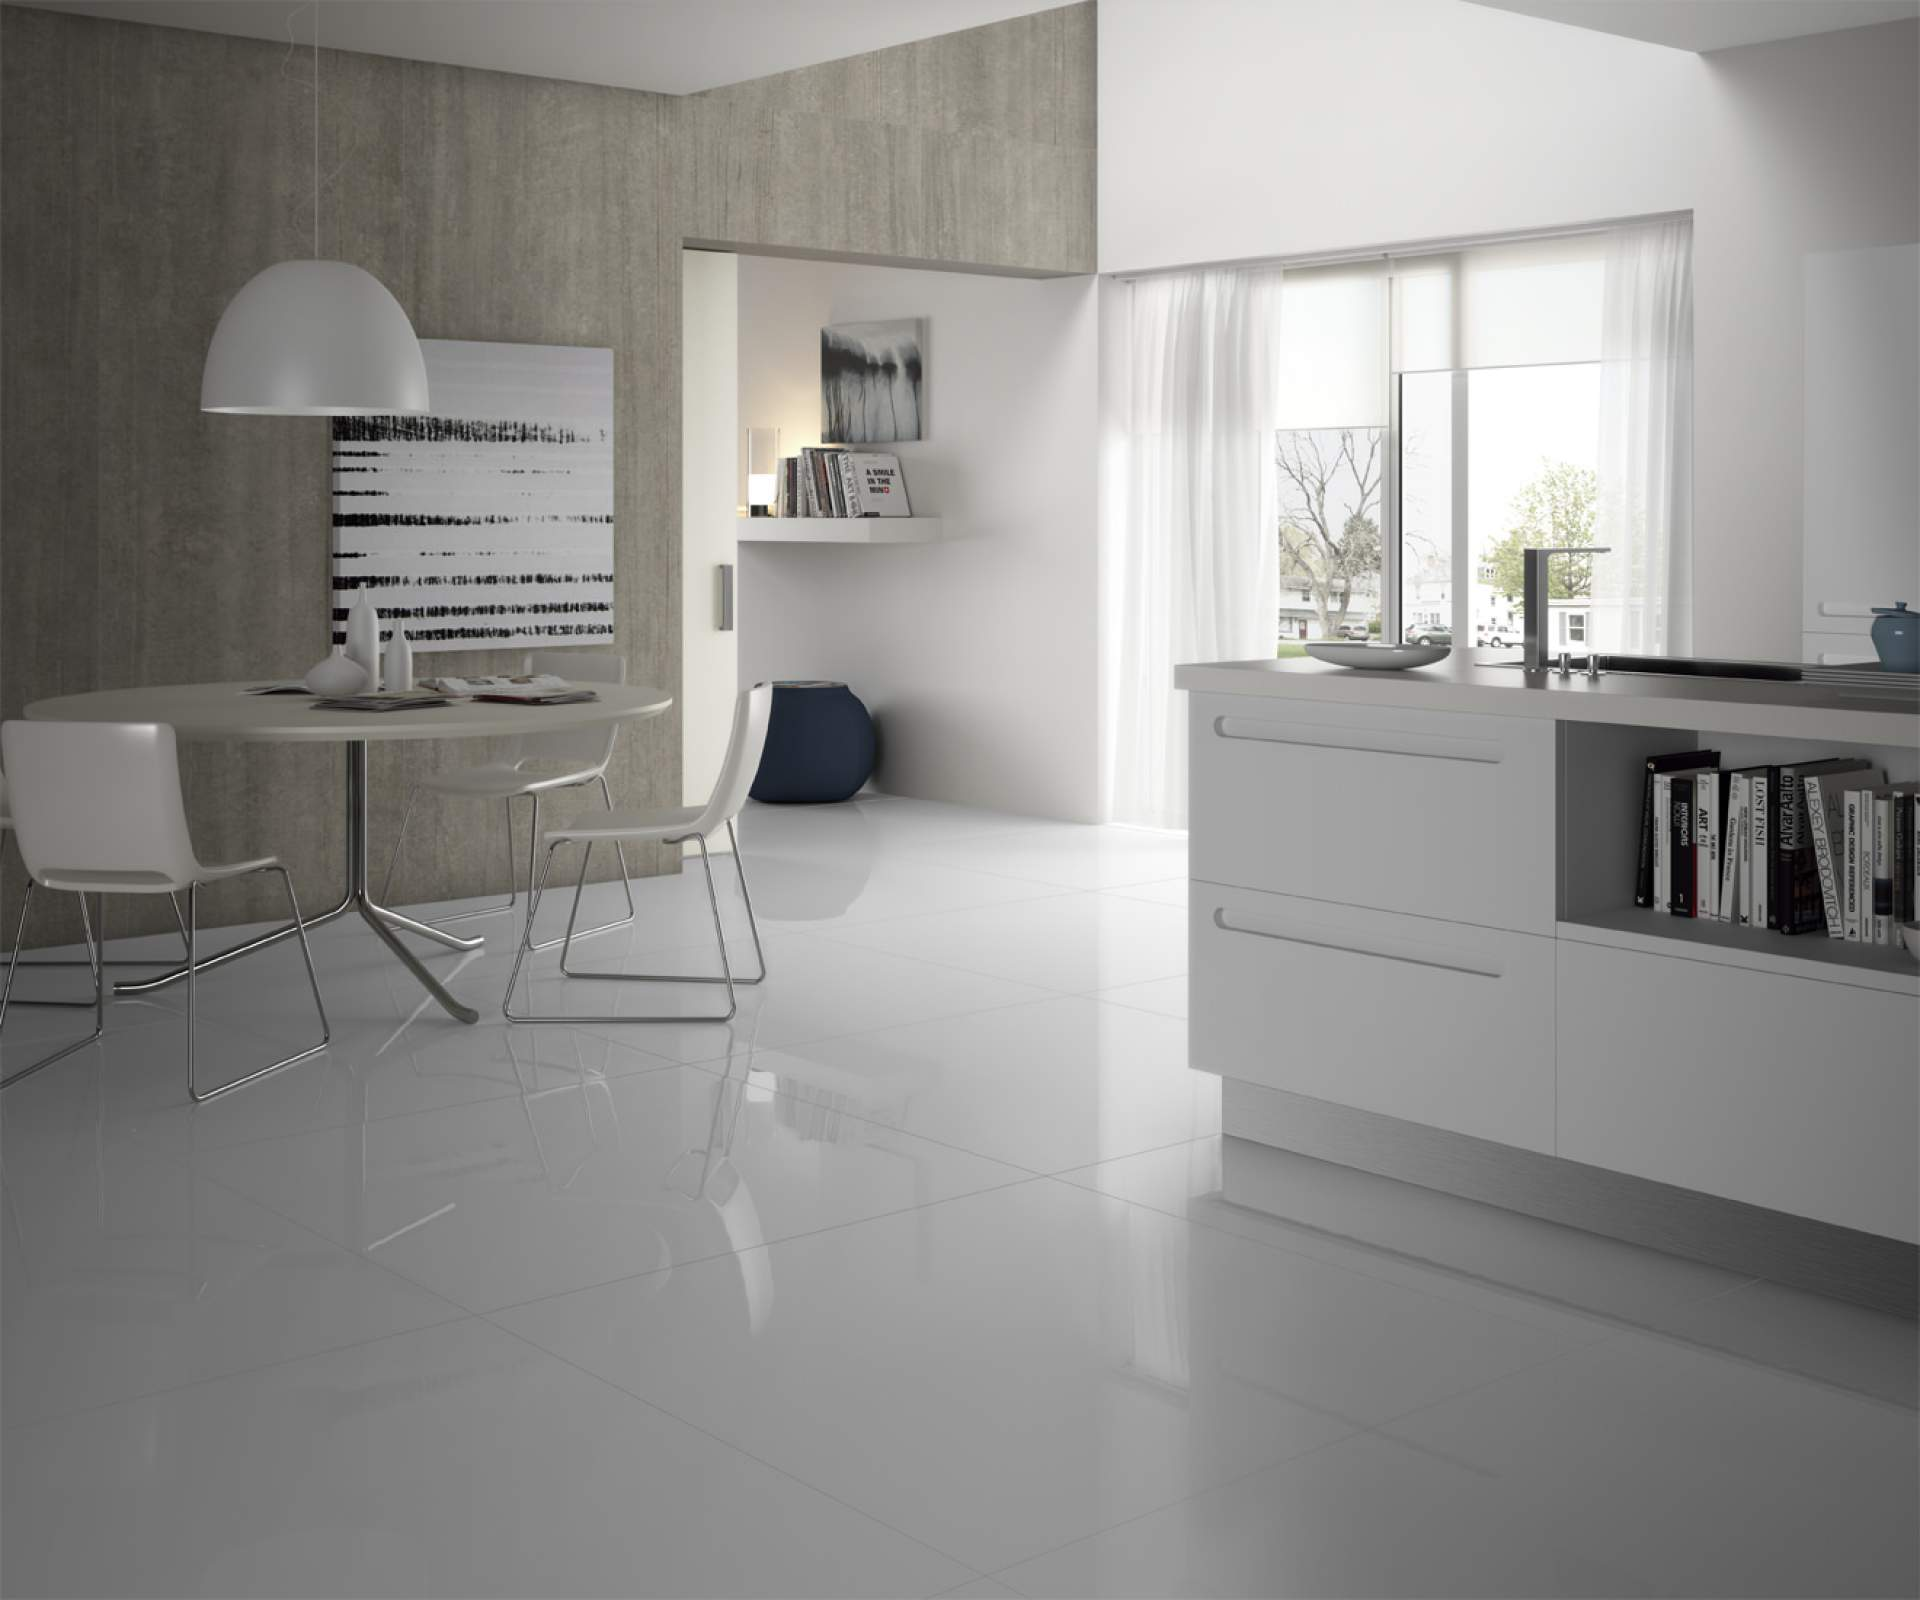 Blank Kitchen setting using White High Gloss Polished Tile